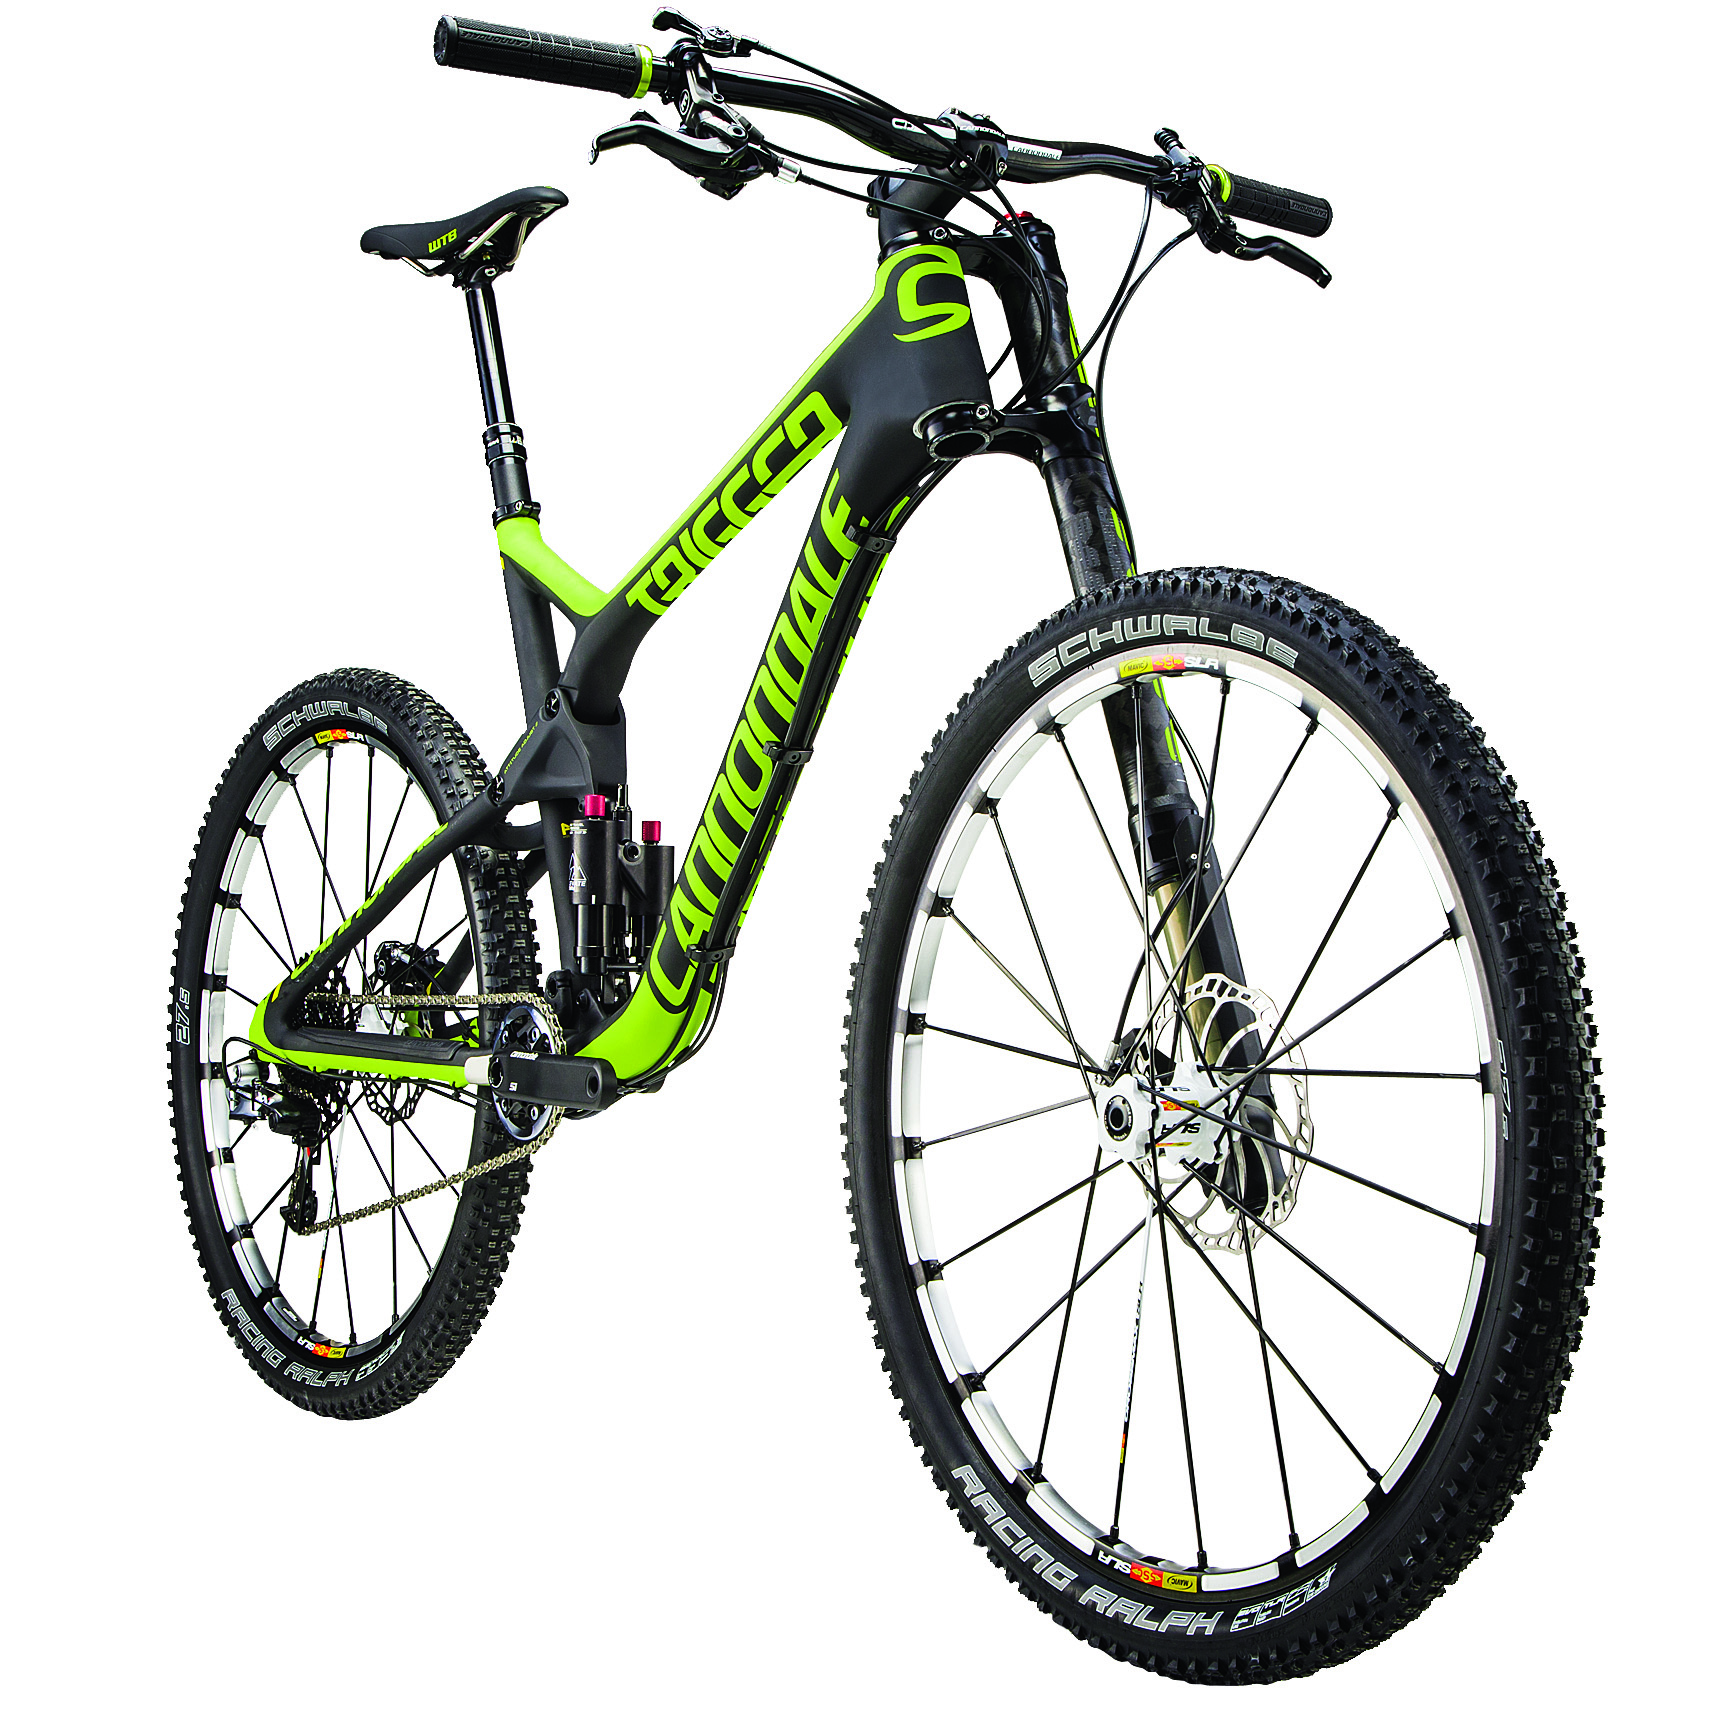 News: Cannondale Announces New 2015 Trigger 27.5 and Trigger 29 ...